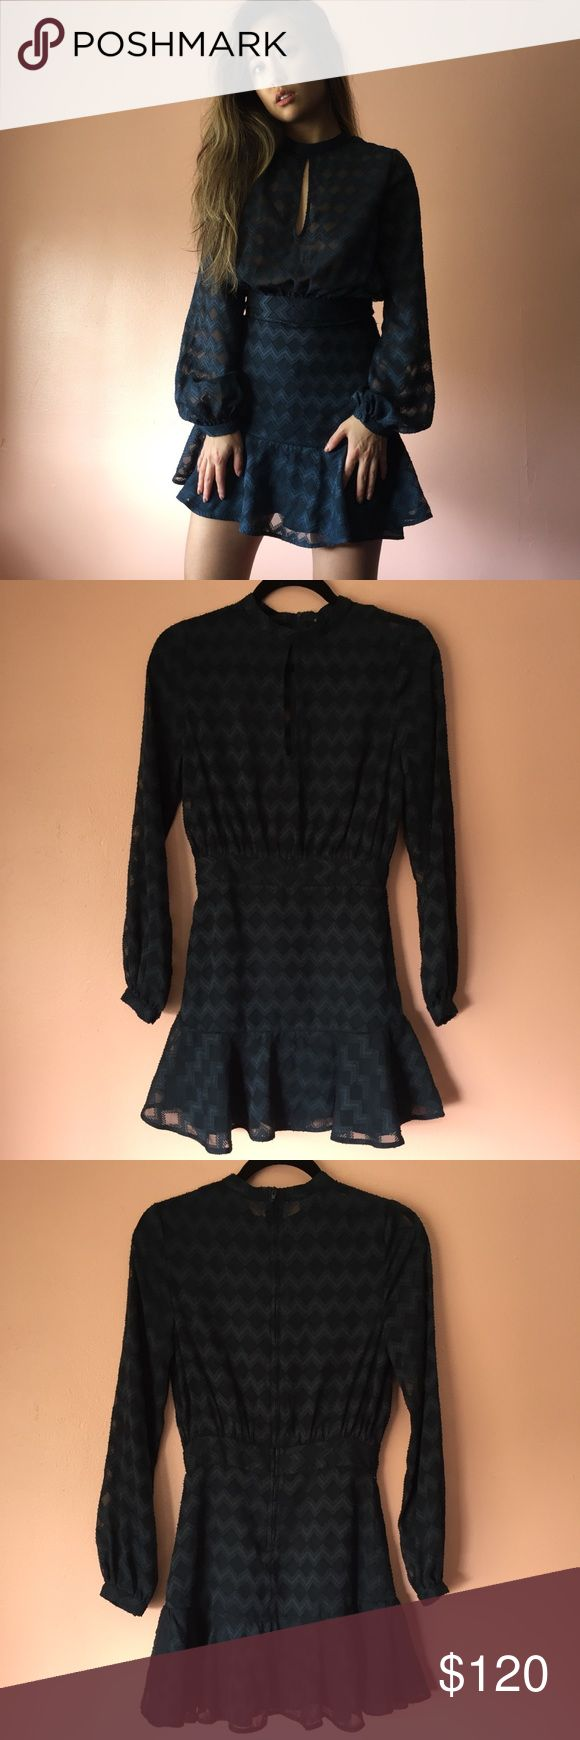 Finders Keepers Midnight LS Mini Dress Shimmy into the night with this midnight long sleeve mini dress by Finders Keepers. Features a crewneck, keyhole, long full cuffed sleeves, fitted waist, flounce hem in textured midnight fabric. Wear with heeled boots. MSRP $190. New with tags. Fits like an XS-S. Label missing. No returns allowed. Please ask all questions before buying. IG: [at] jacqueline.pak #finderskeepers Finders Keepers Dresses Mini